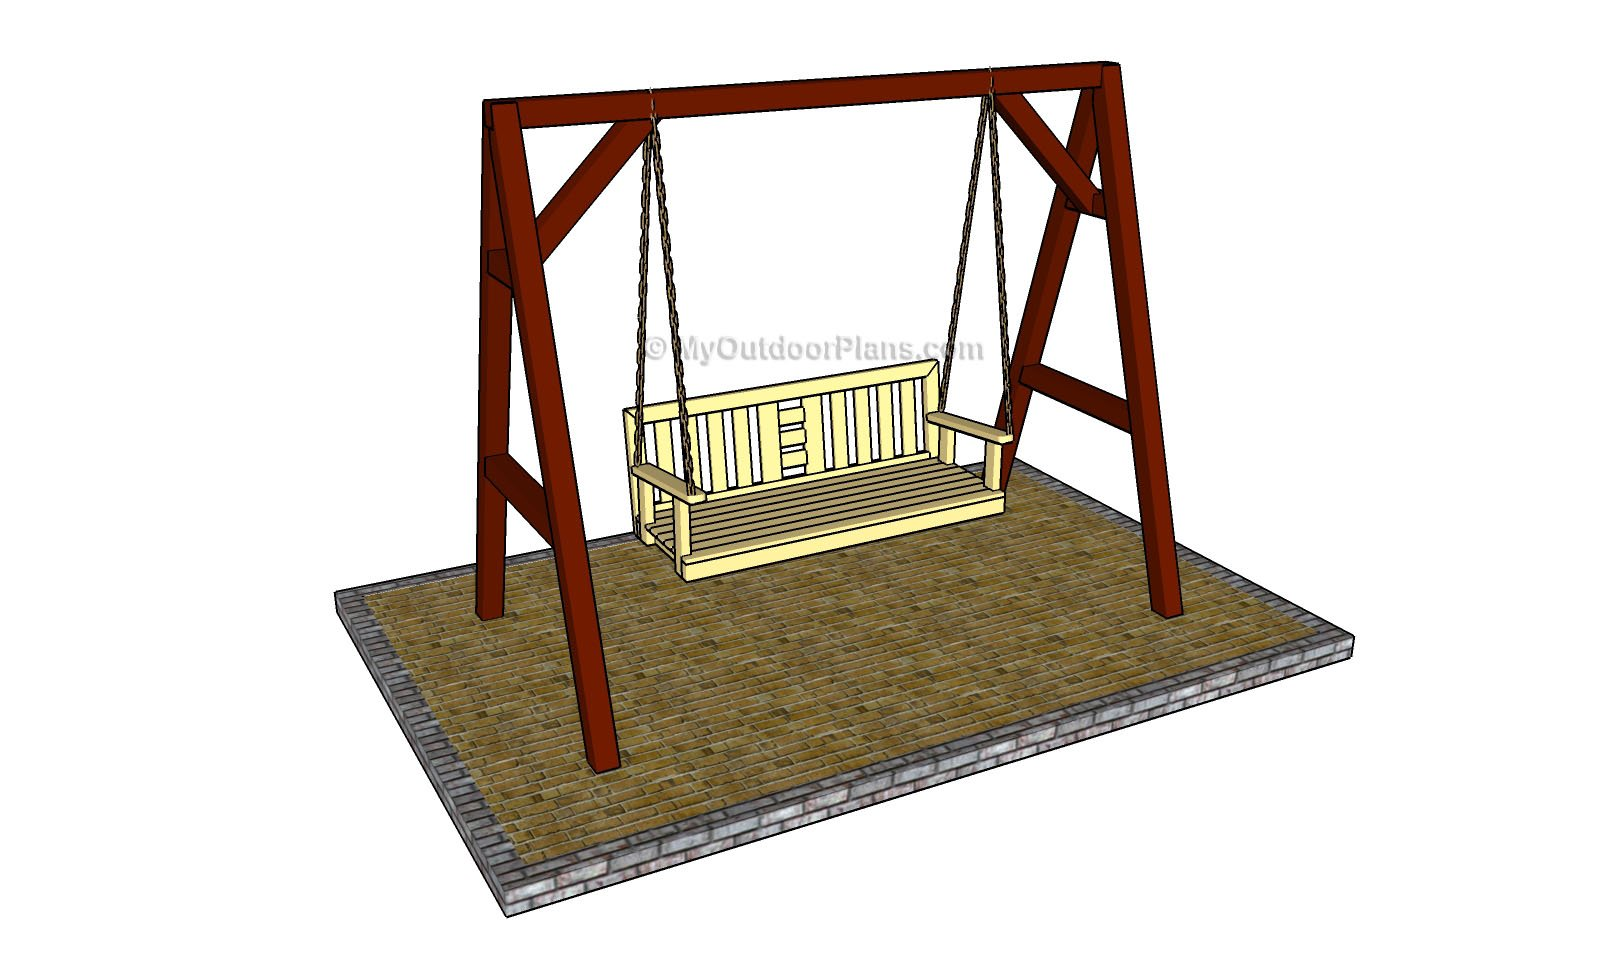 Porch Swing Stand Plans | MyOutdoorPlans | Free Woodworking Plans ...